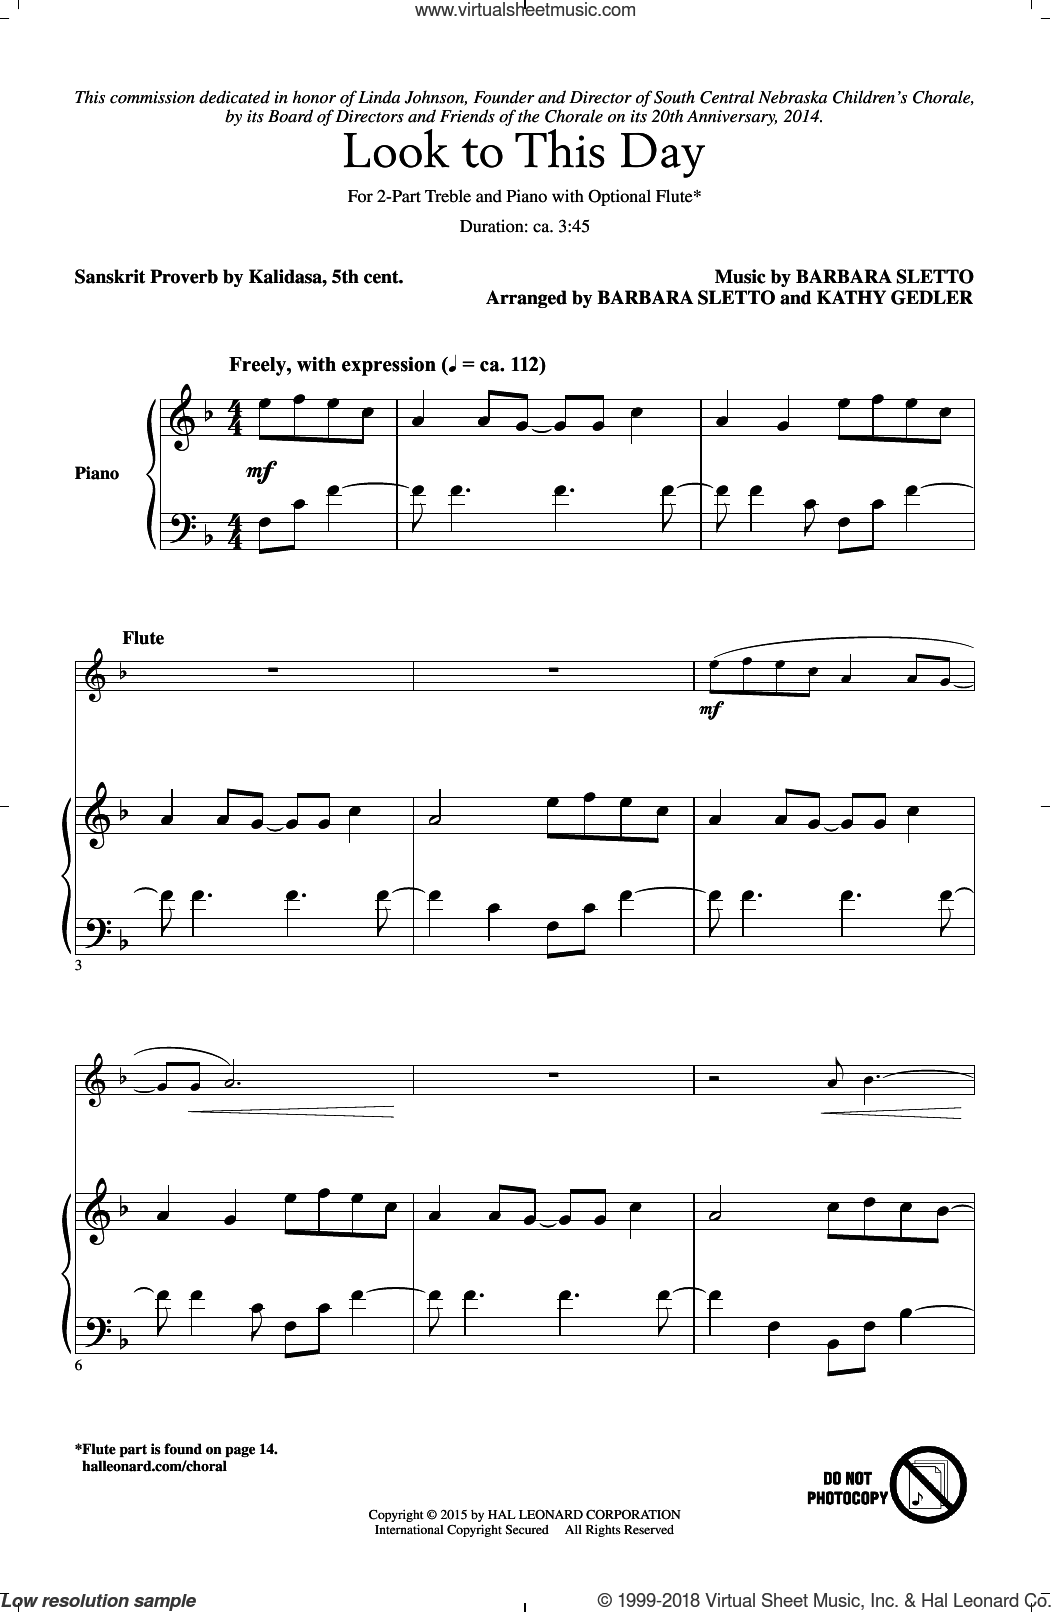 Look To This Day sheet music for choir and piano (duets) by Sanskrit Proverb. Score Image Preview.